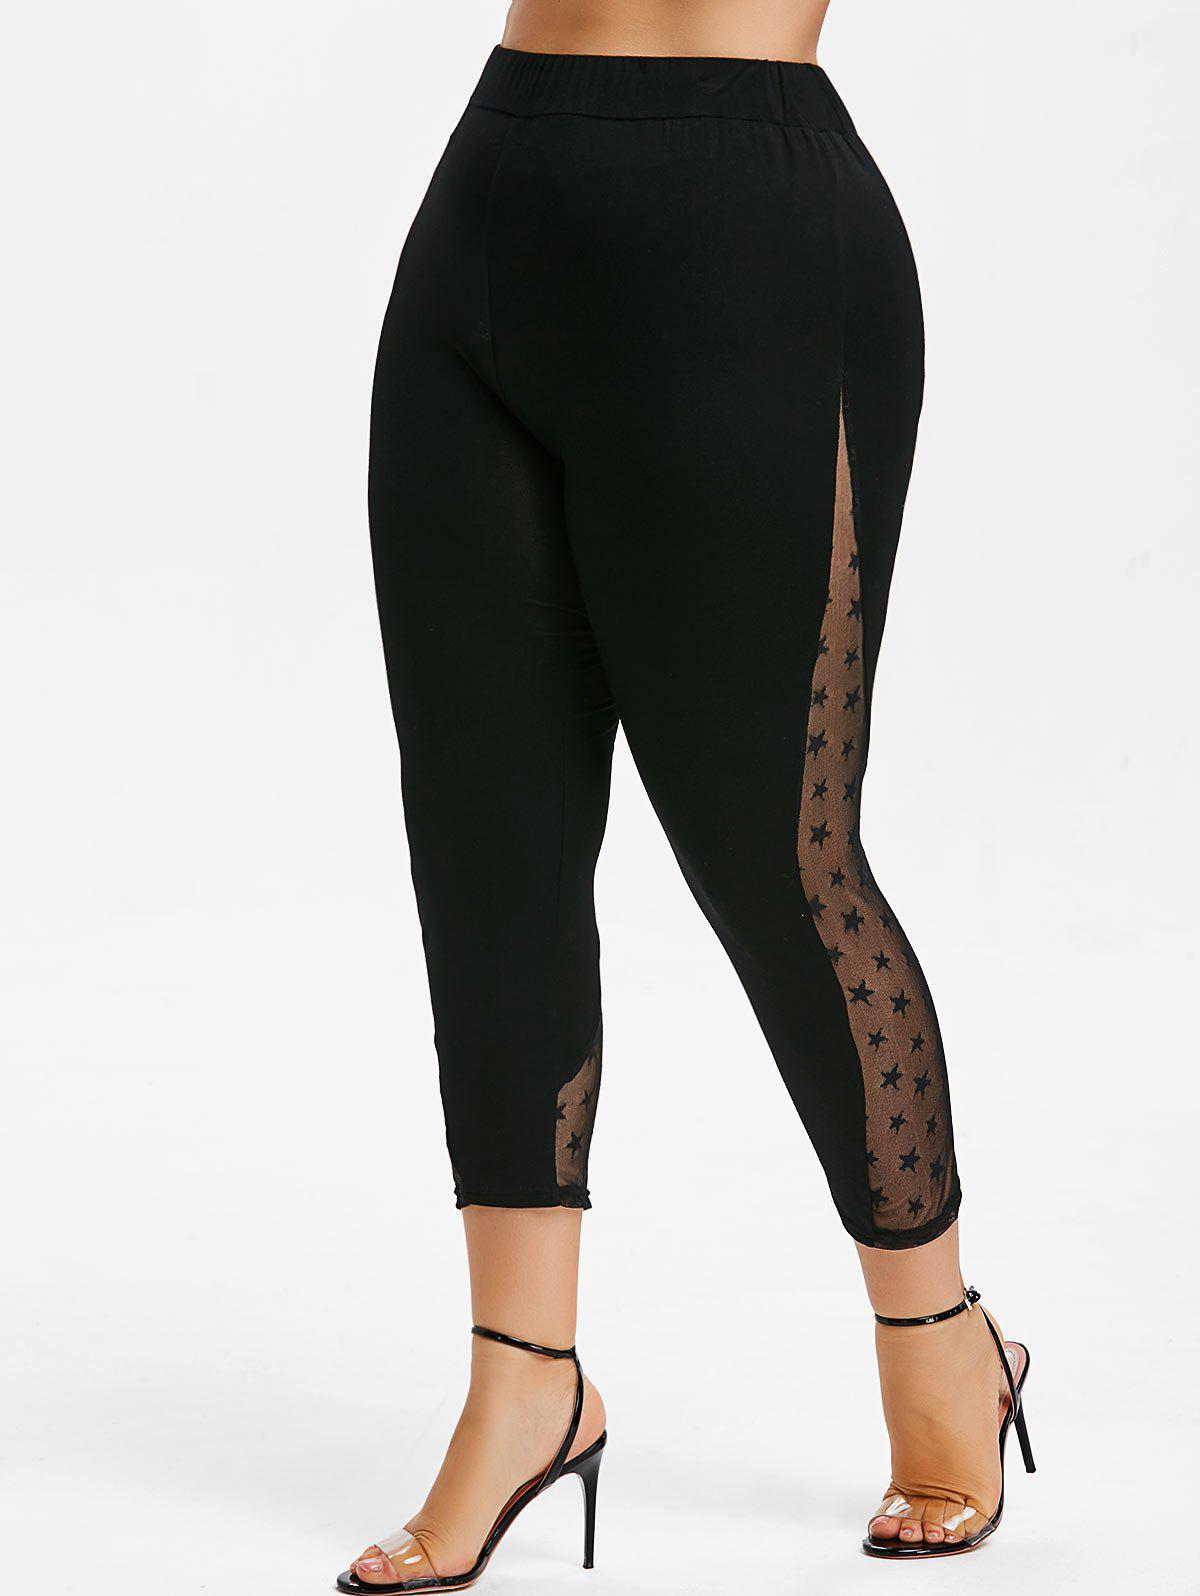 Discount Star Lace Panel Plus Size Capri Leggings